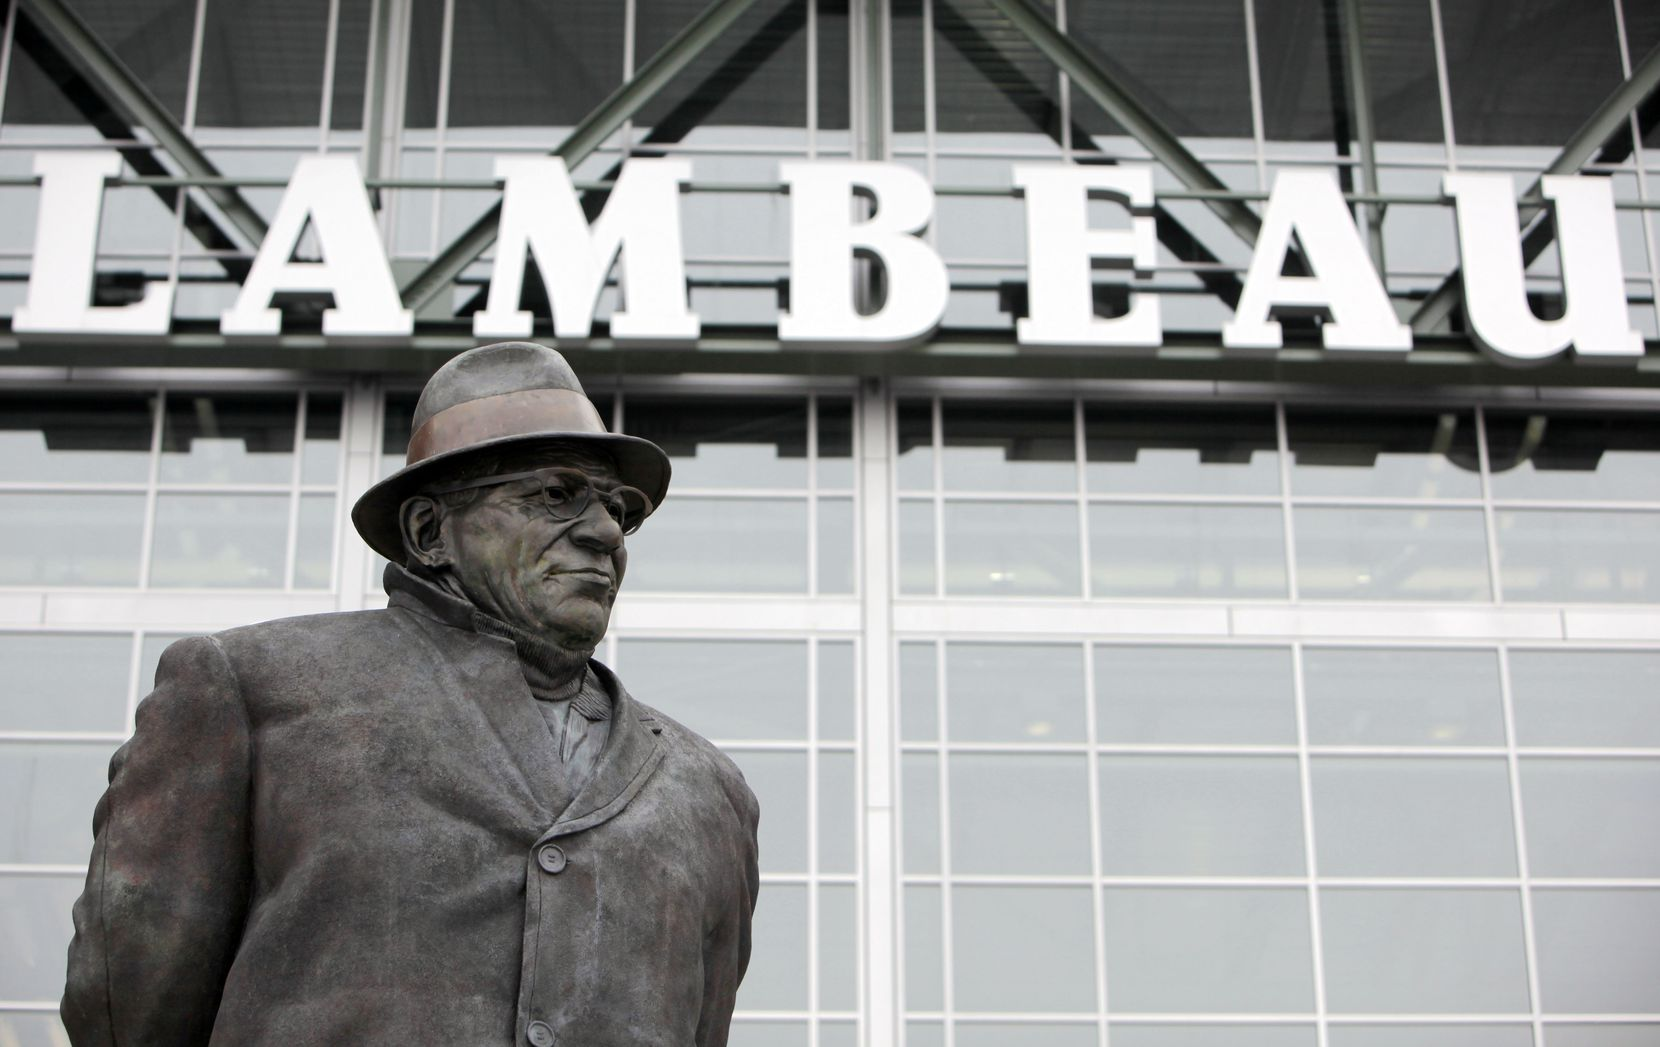 A statue of Vince Lombardi stands in front of Lambeau Field in Green Bay, on January 25, 2011. The Packers defeated the Bears 21-14 in the NFC championship to earn a trip to the Super Bowl at Cowboys Stadium.